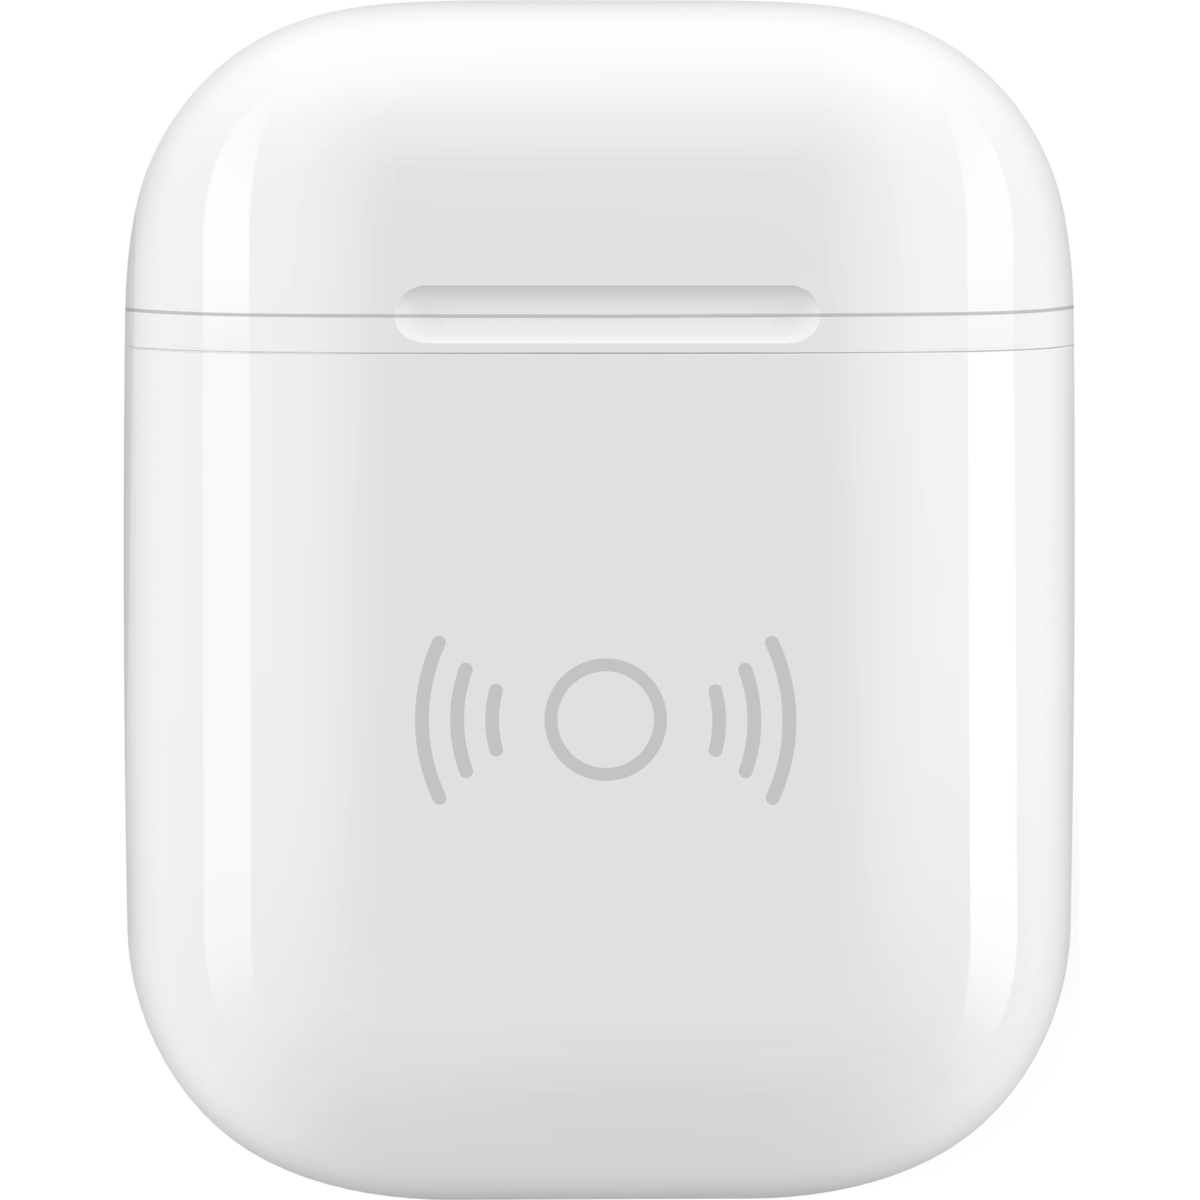 AirPods HyperJuice Wireless Charger Case $9.99